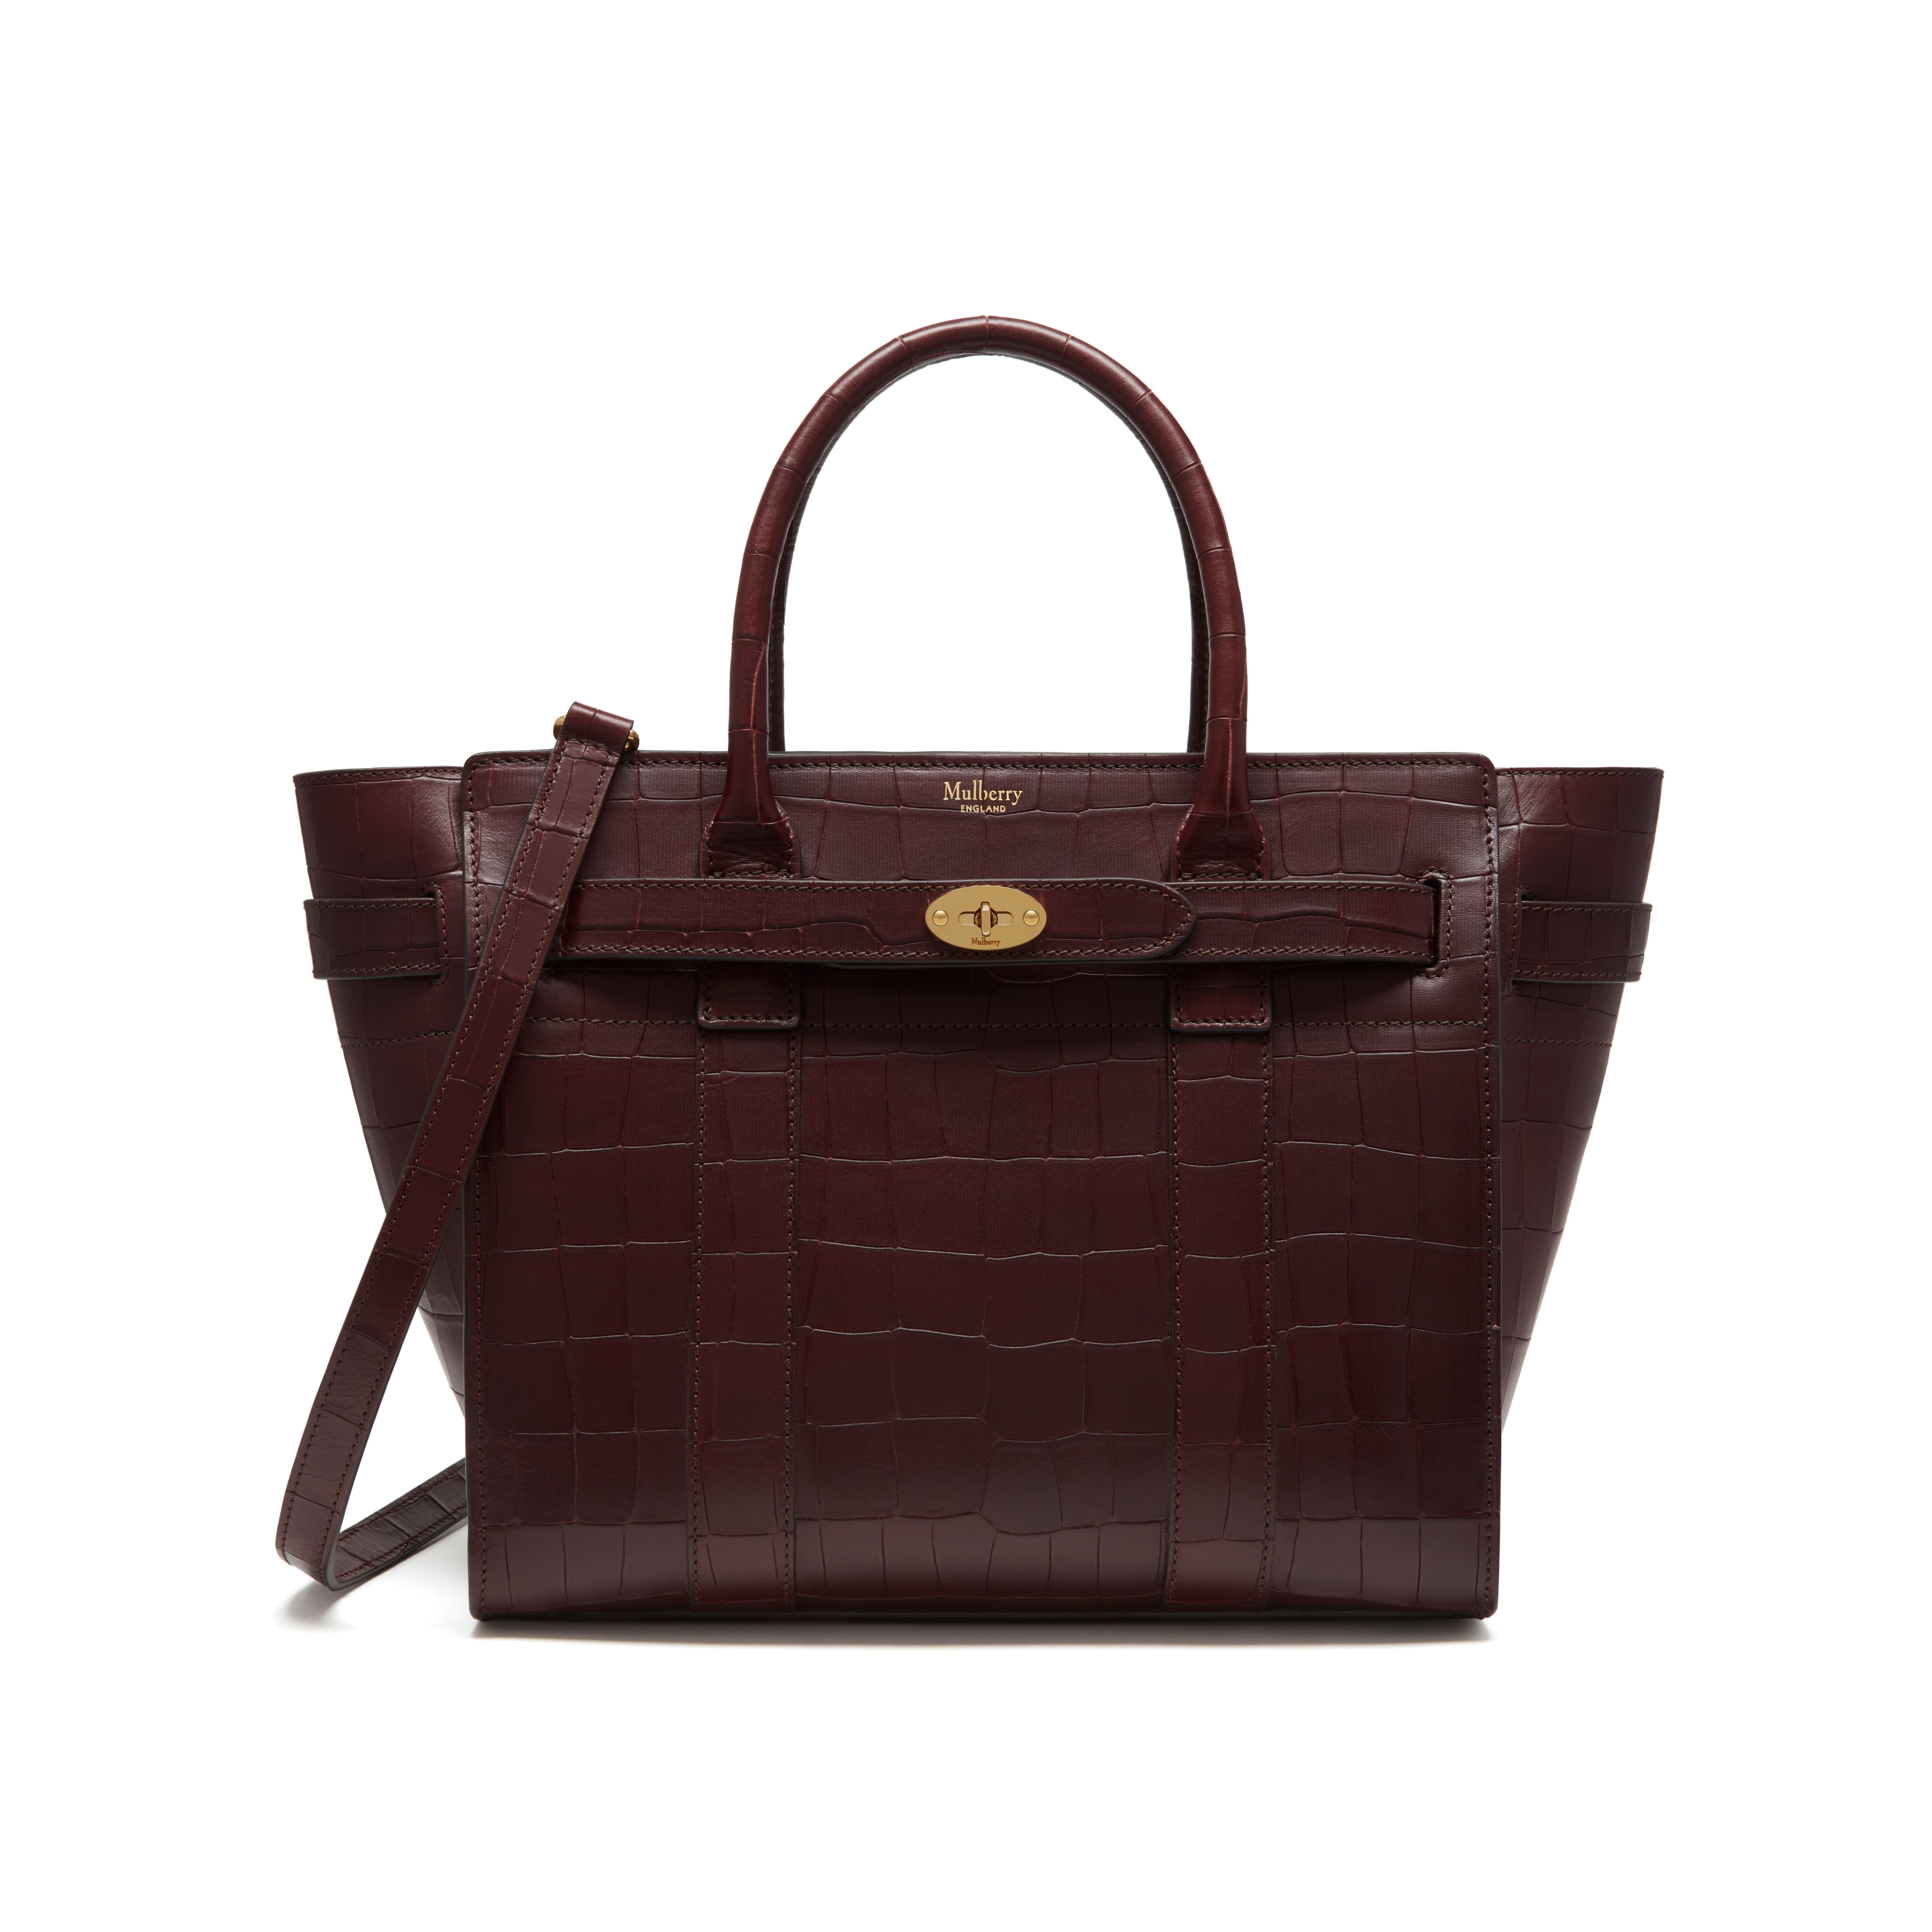 Mulberry - Small Zipped Bayswater in Oxblood Deep Embossed Croc Print